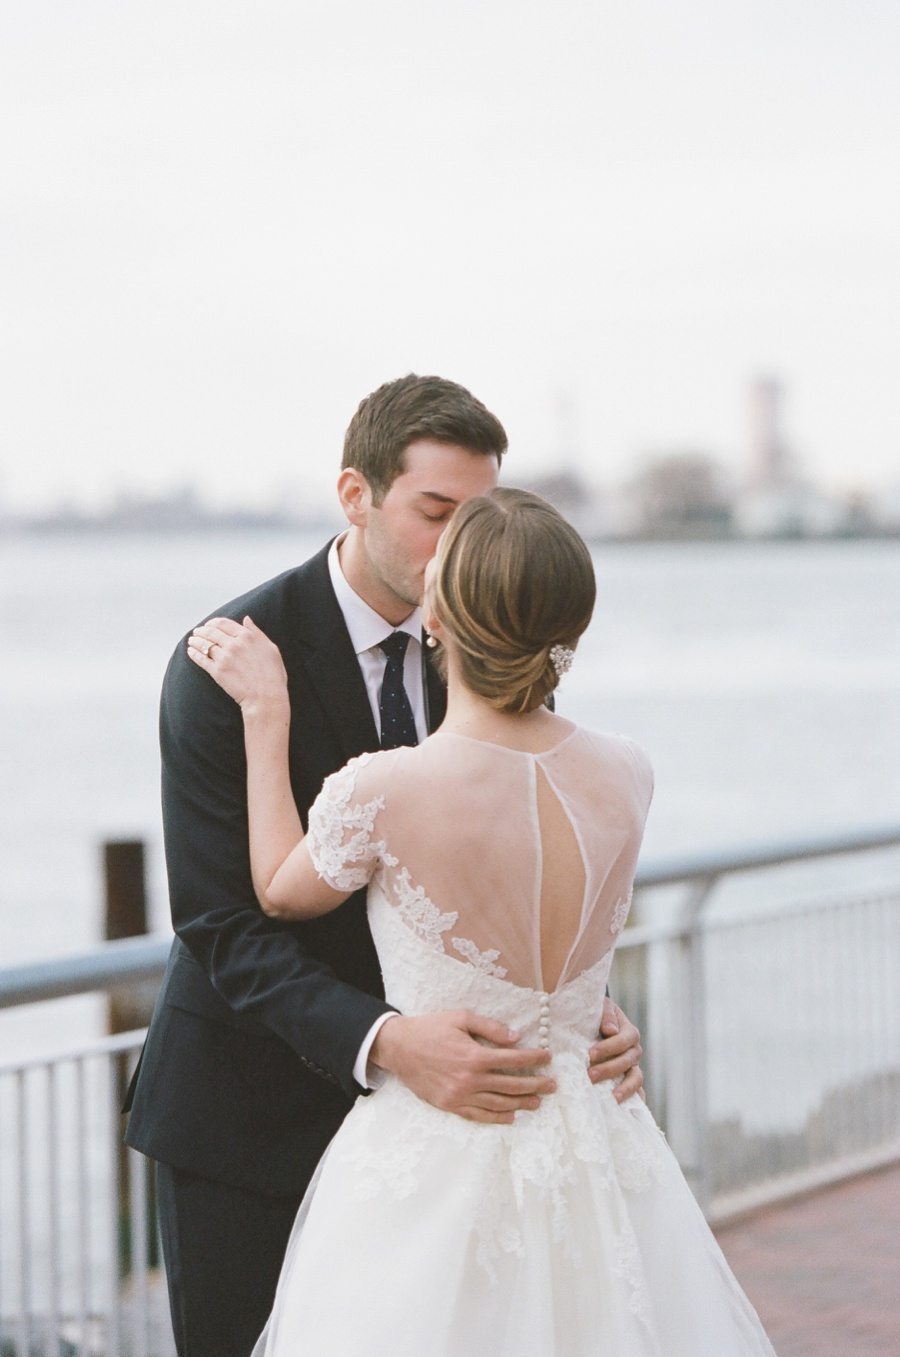 RKP_Liberty_Warehouse_Wedding_Brooklyn_NYC_18.jpg